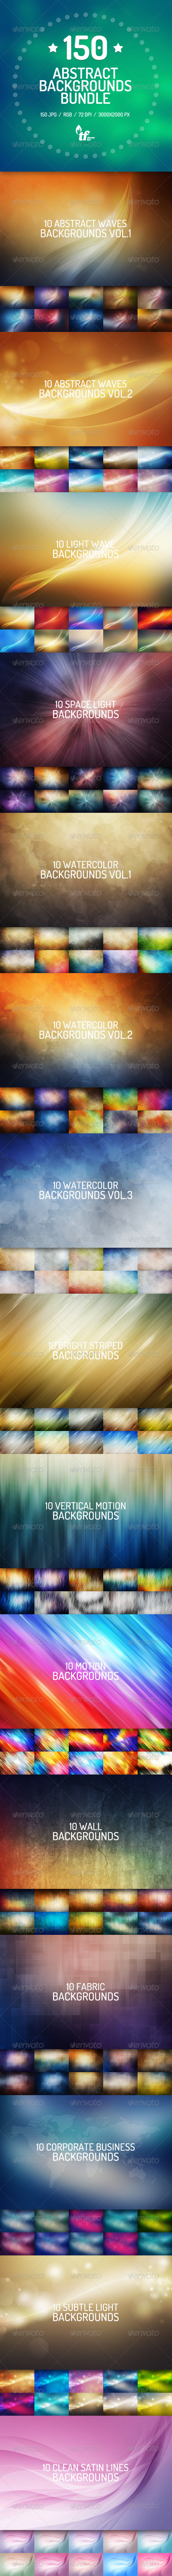 GraphicRiver 150 Abstract Backgrounds Bundle 7519945